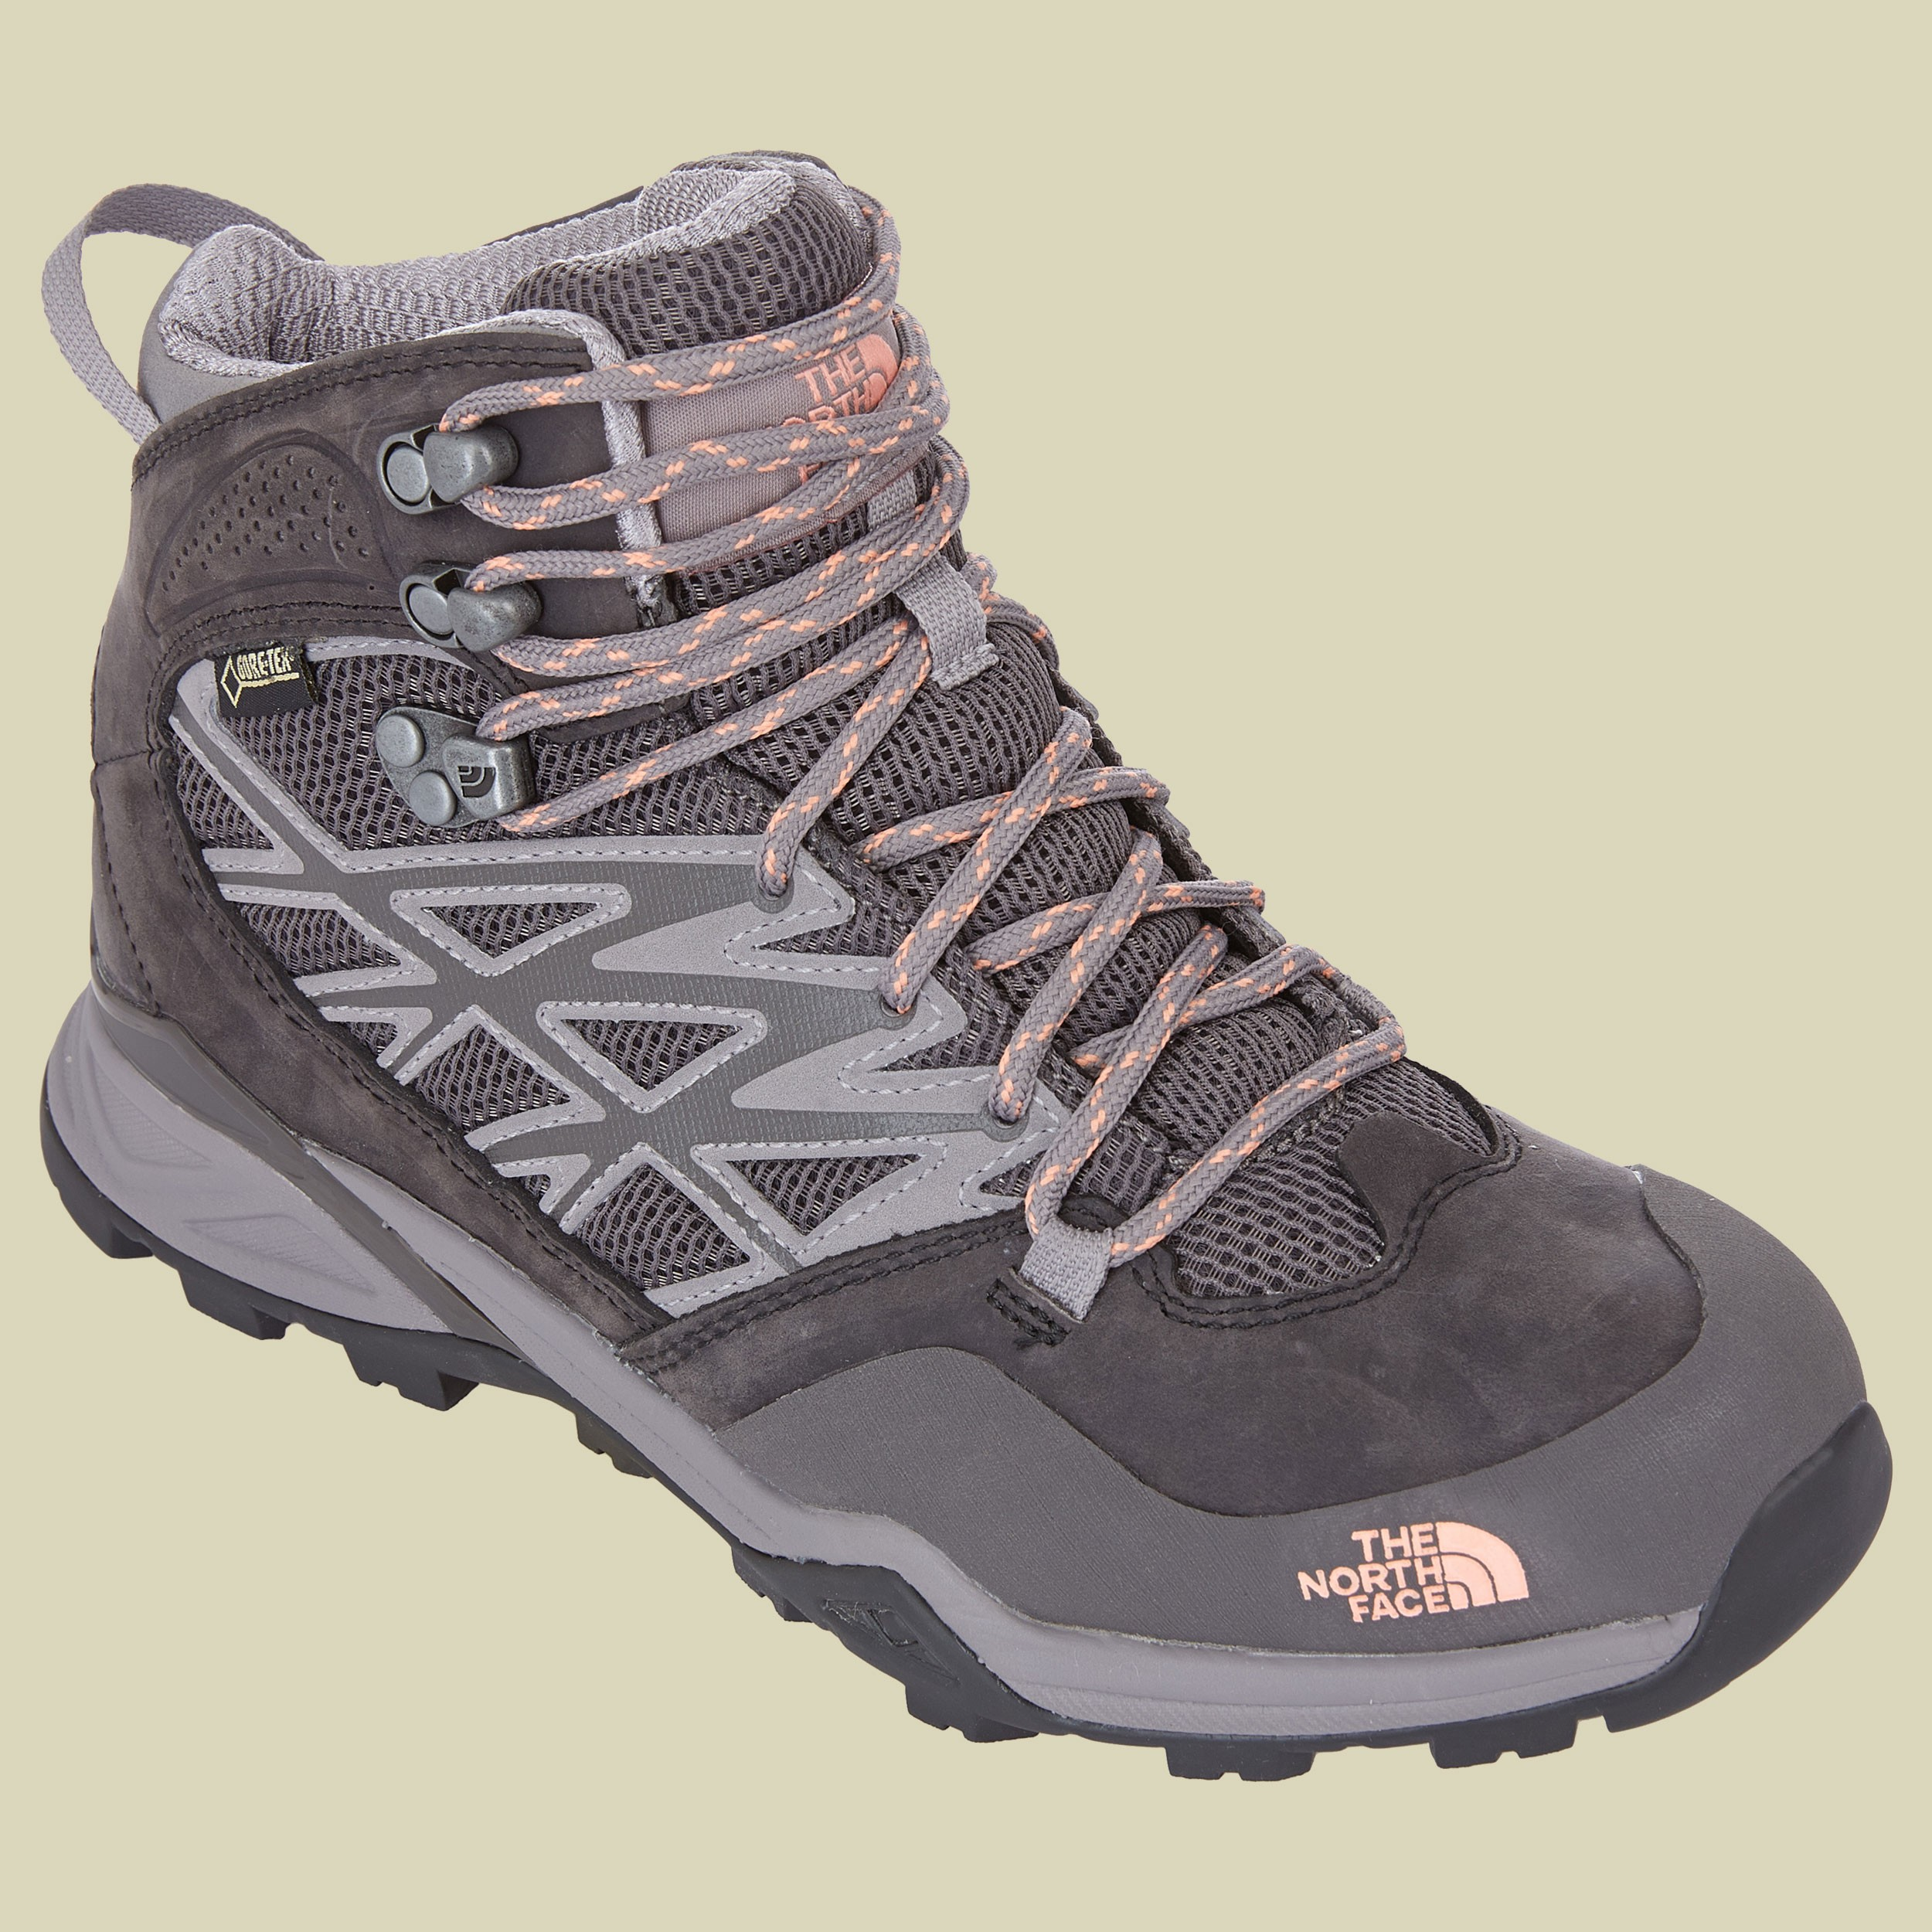 Hedgehog Hike Mid GTX Women